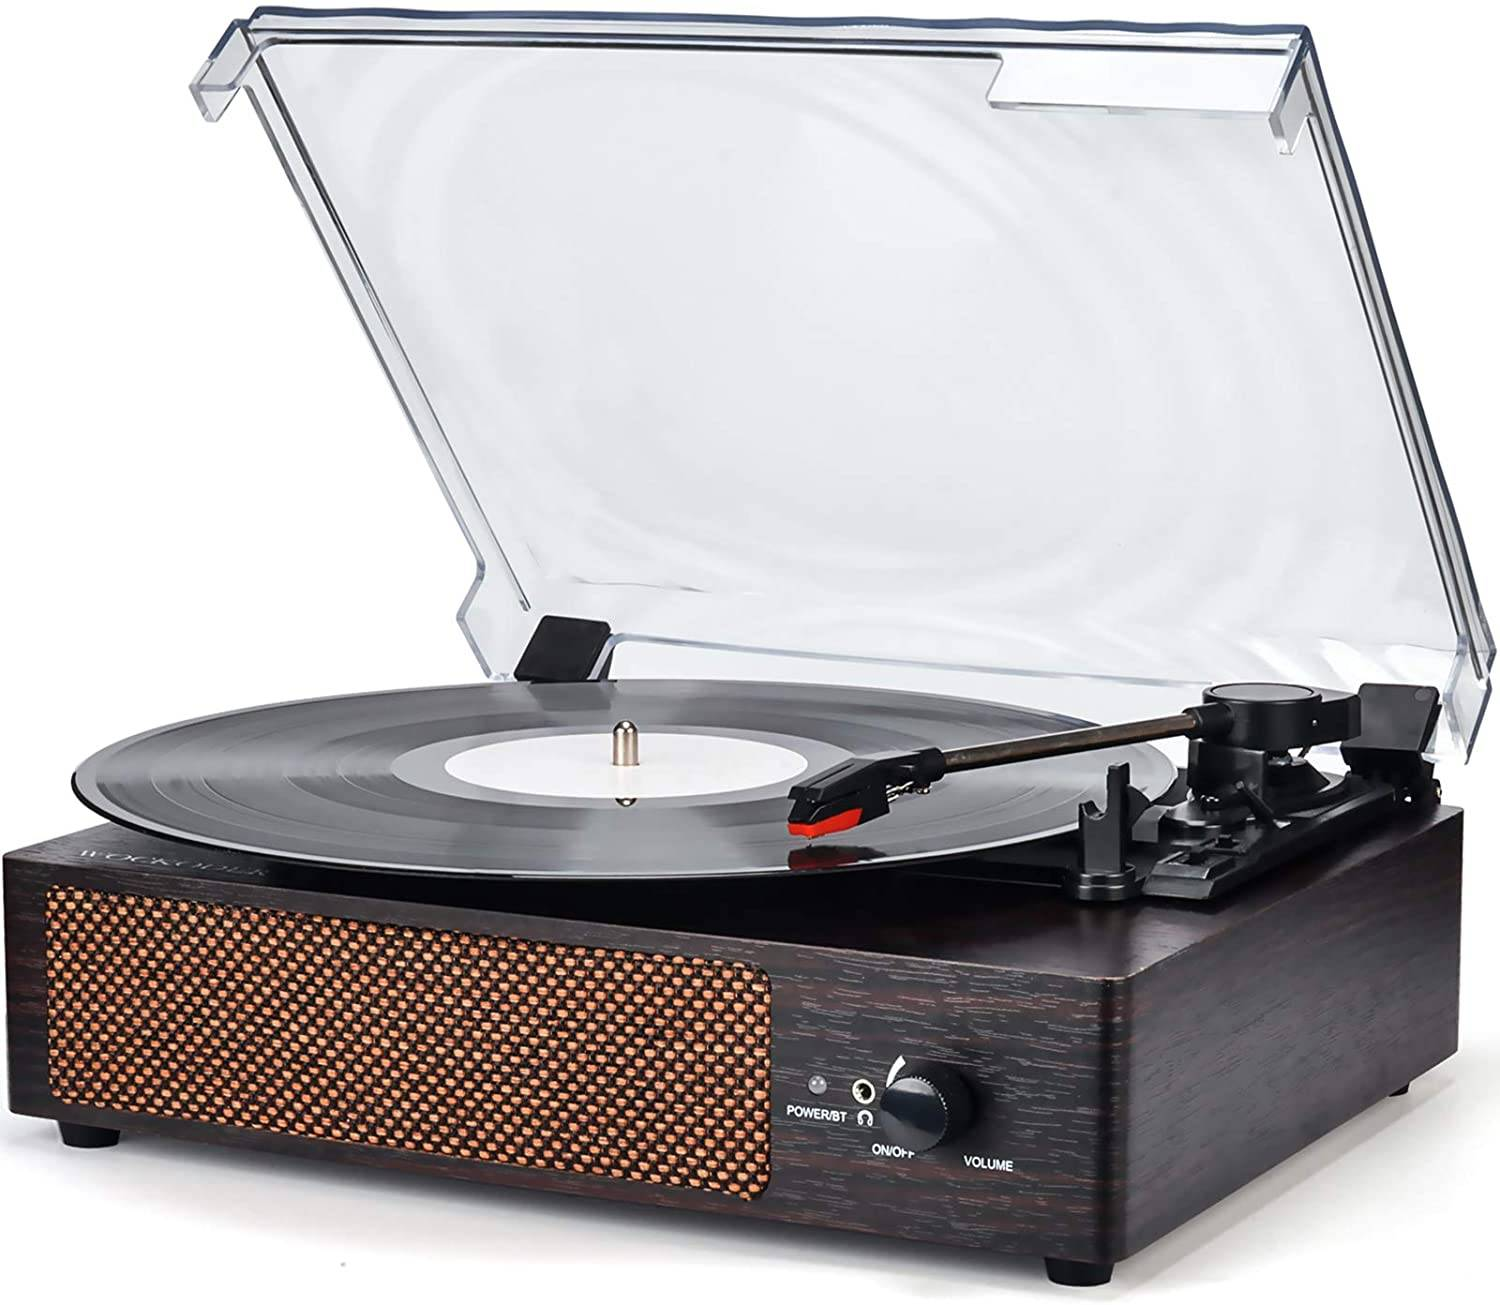 Wockoder Record Player - Wireless TurntableWockoder Record Player - Wireless Turntable